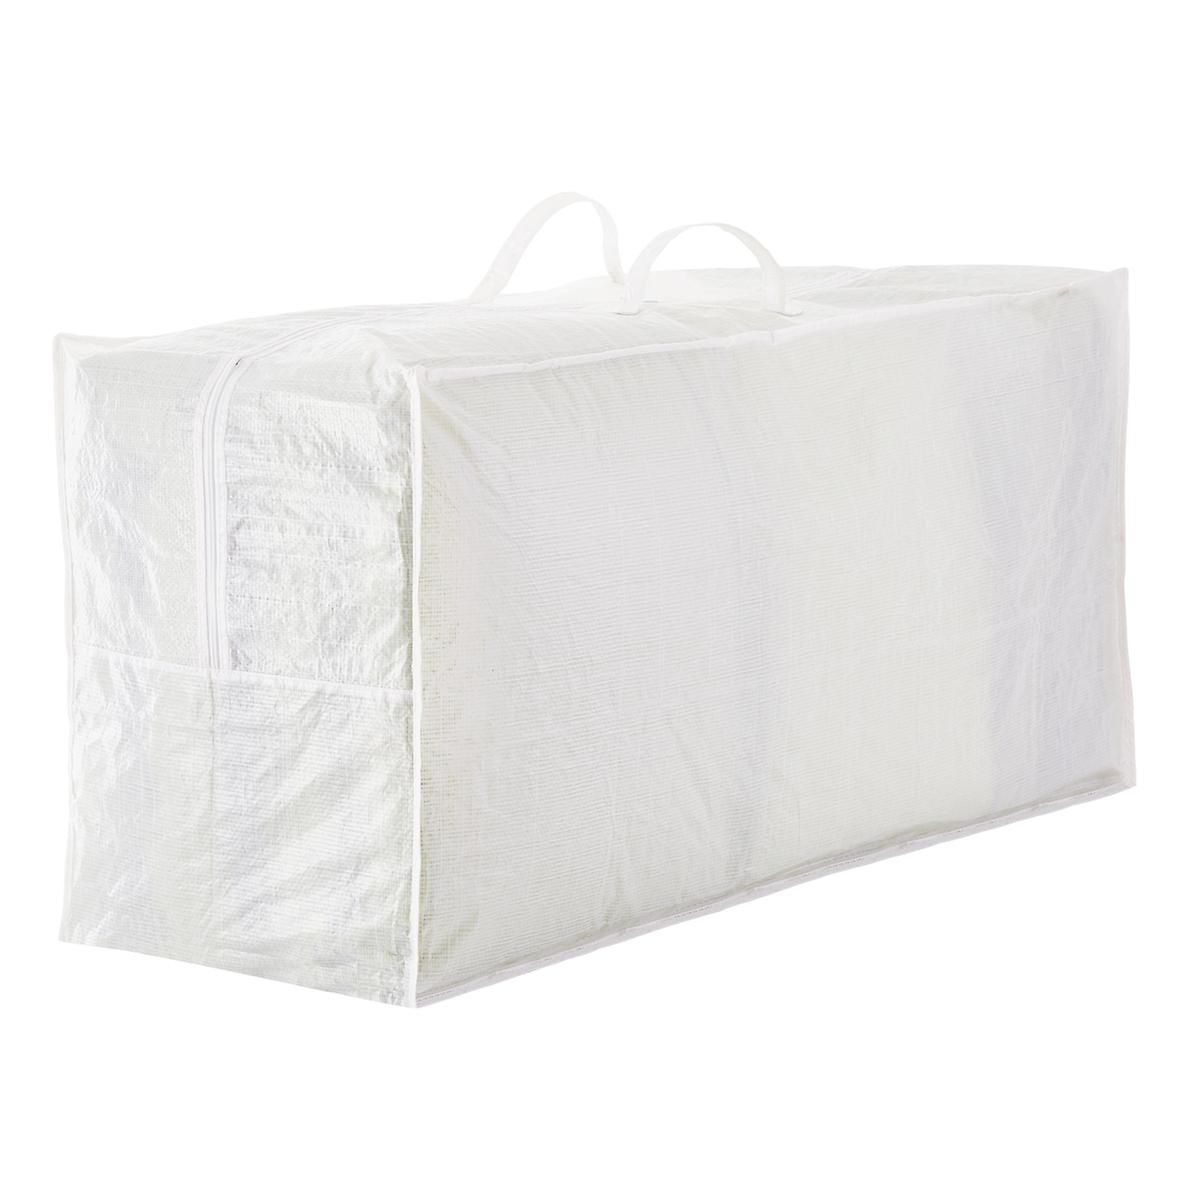 Our Outdoor Cushion Storage Bag Is Designed To Protect Outdoor Furnitureu2026